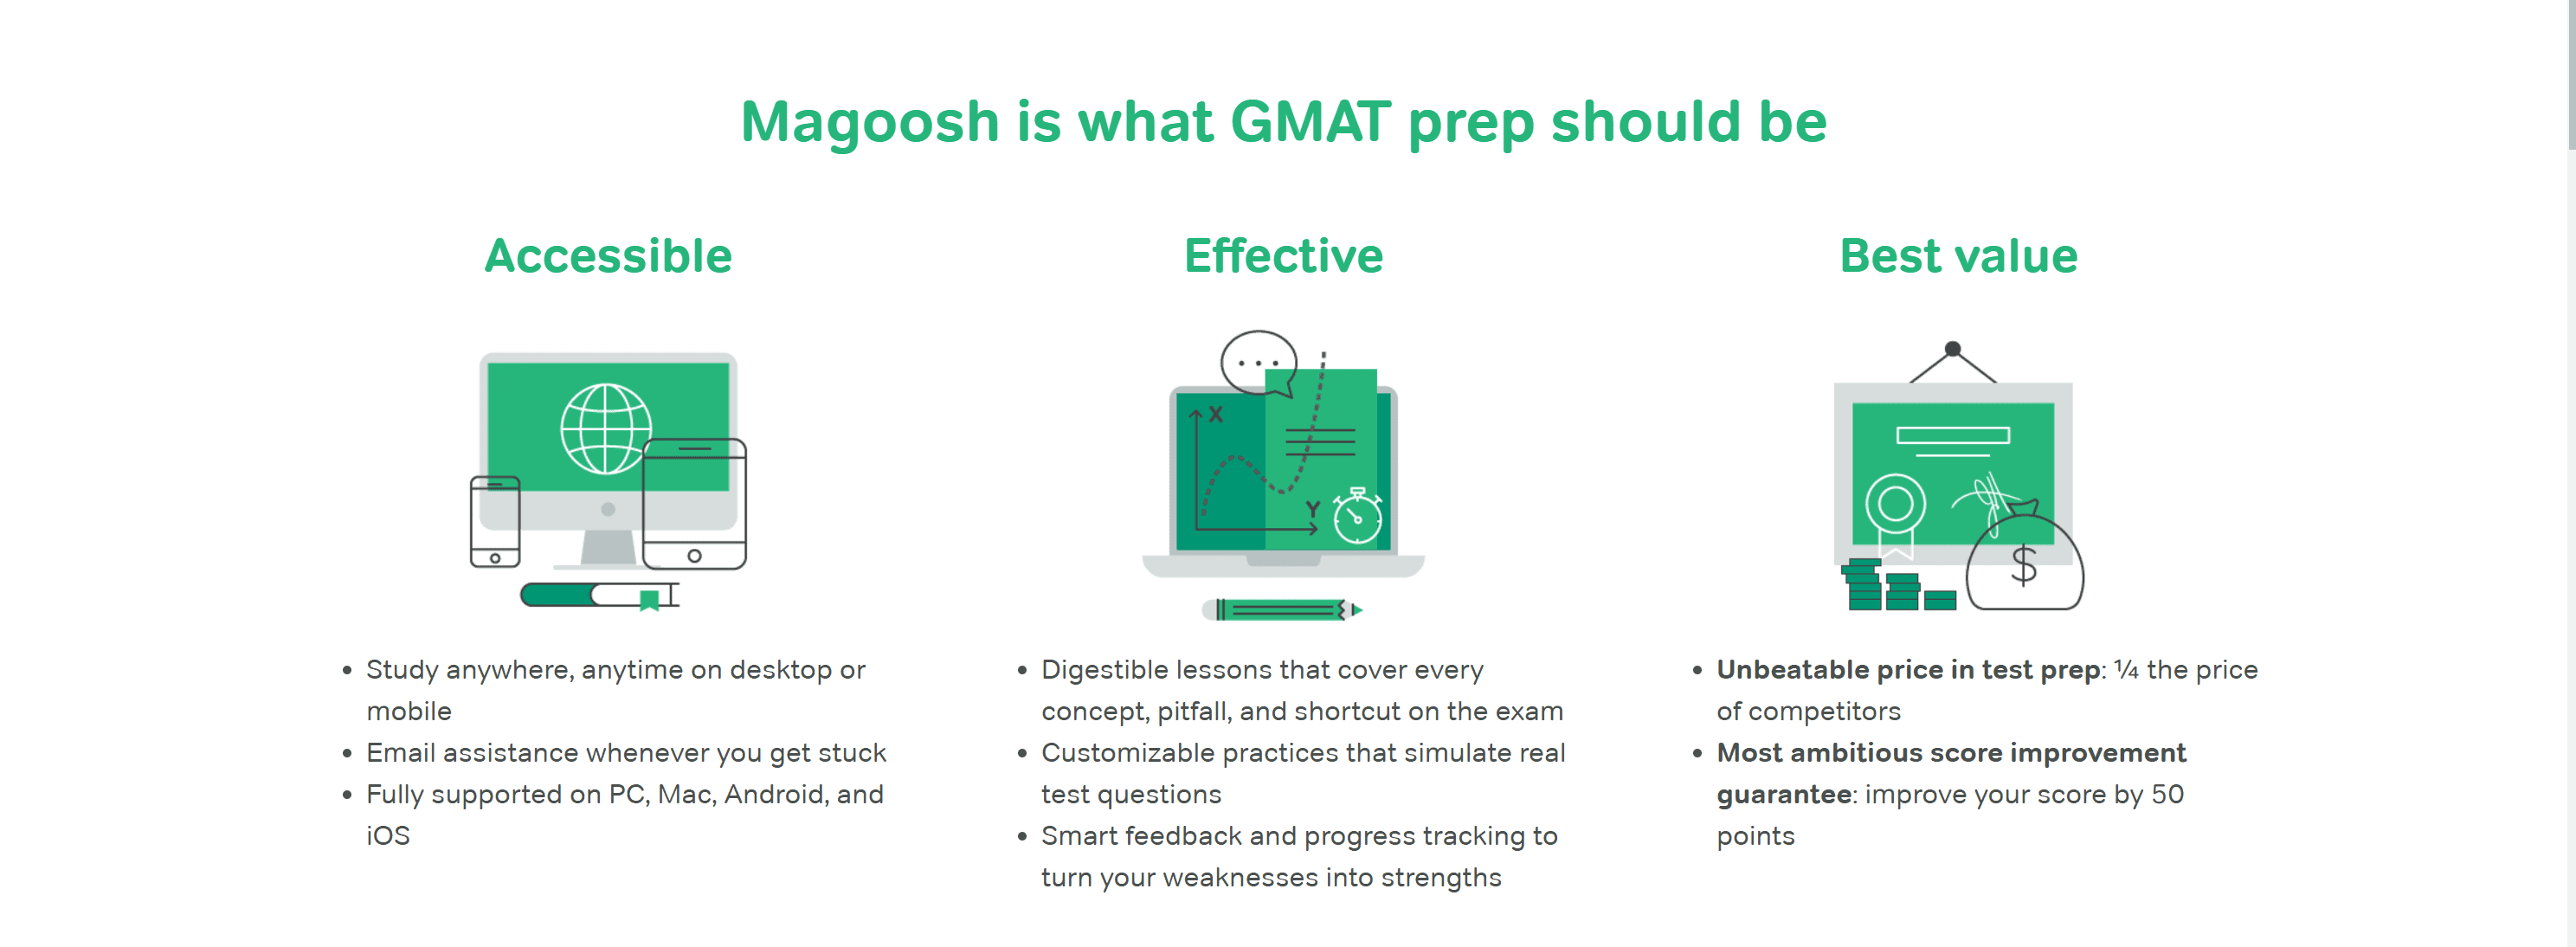 Online Test Prep Magoosh Pros And Cons